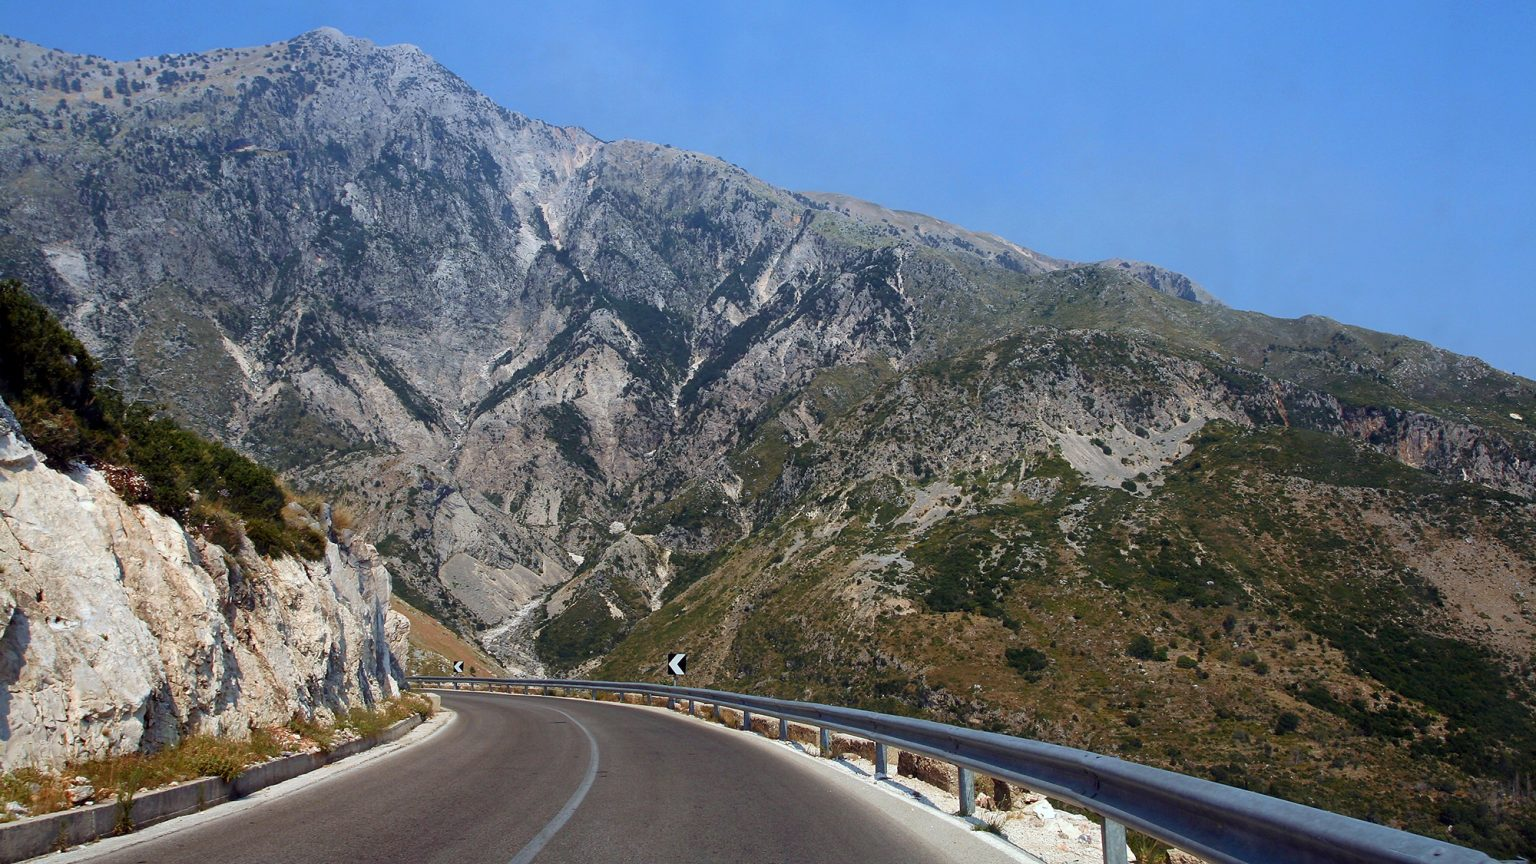 Llogara National Park, Vlora, Source: commons.wikimedia.org Dori